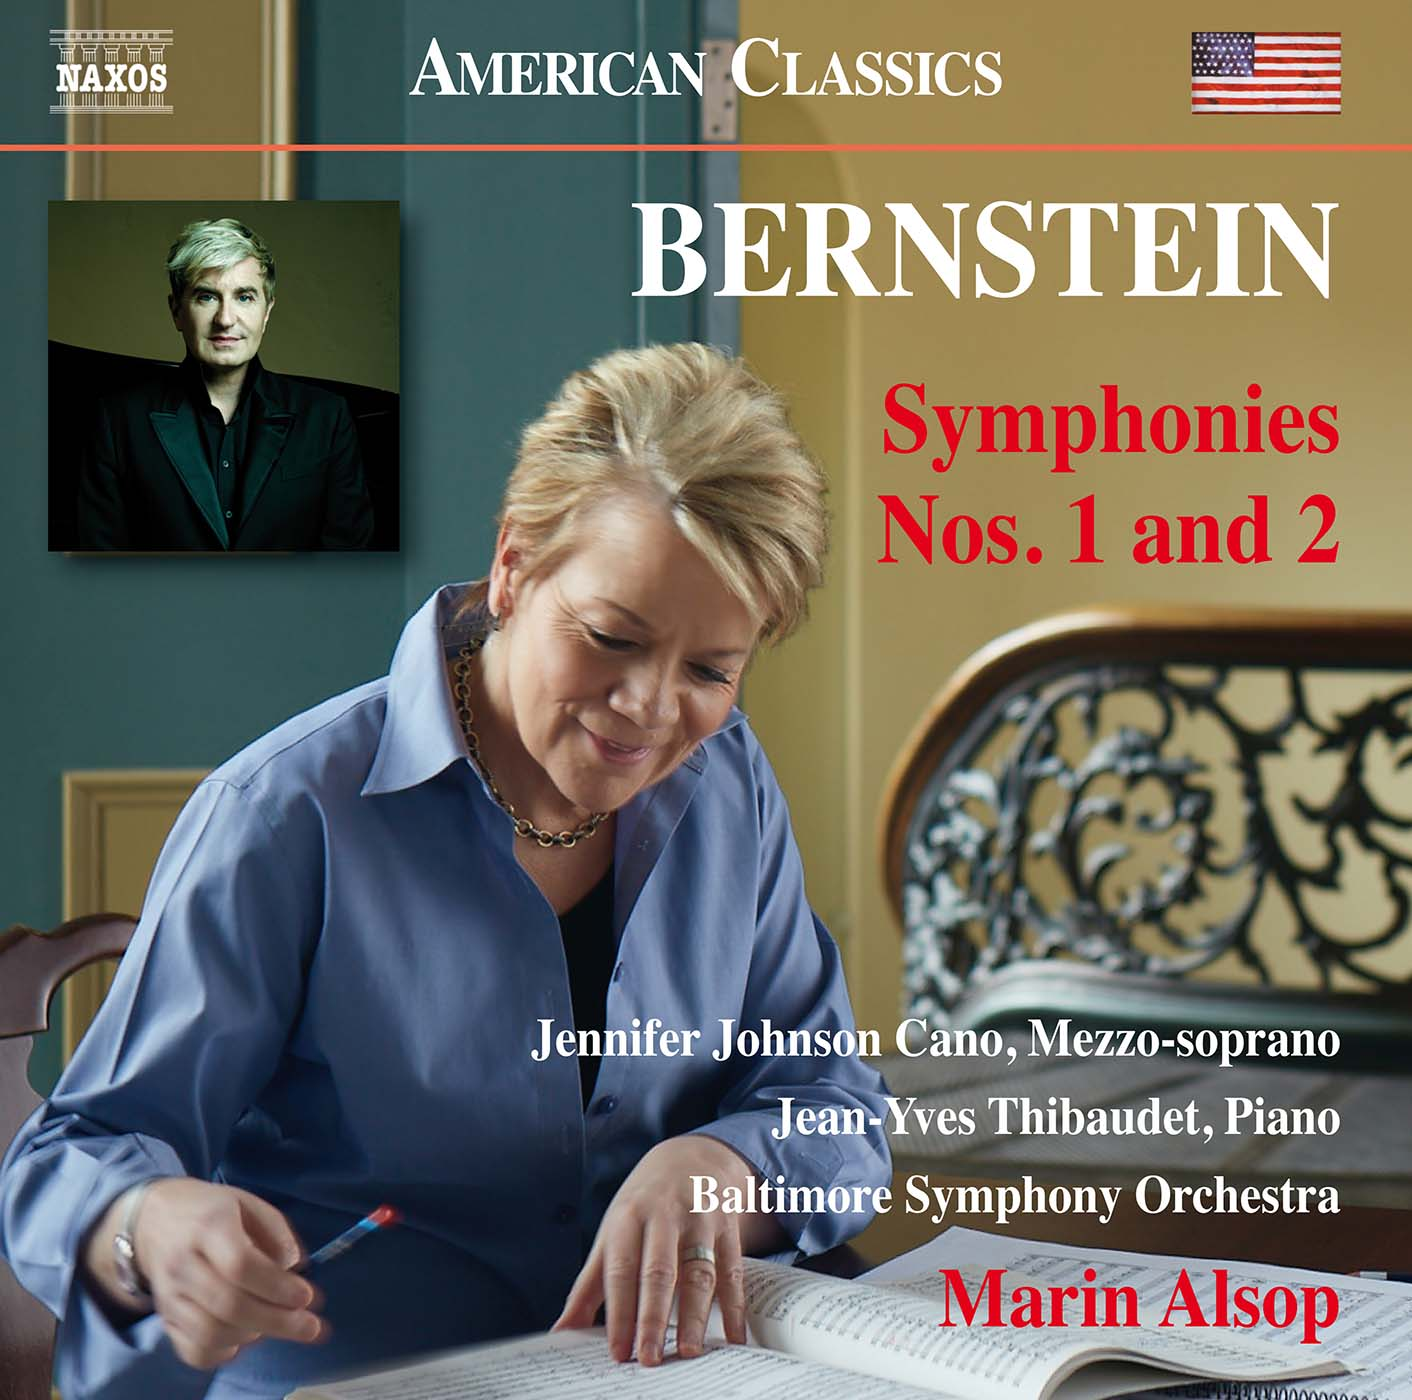 Reloaded twaddle – RT @naxosrecords: Explore @LennyBernstein's Symphony No. 1 'Jeremiah' and Sympho...